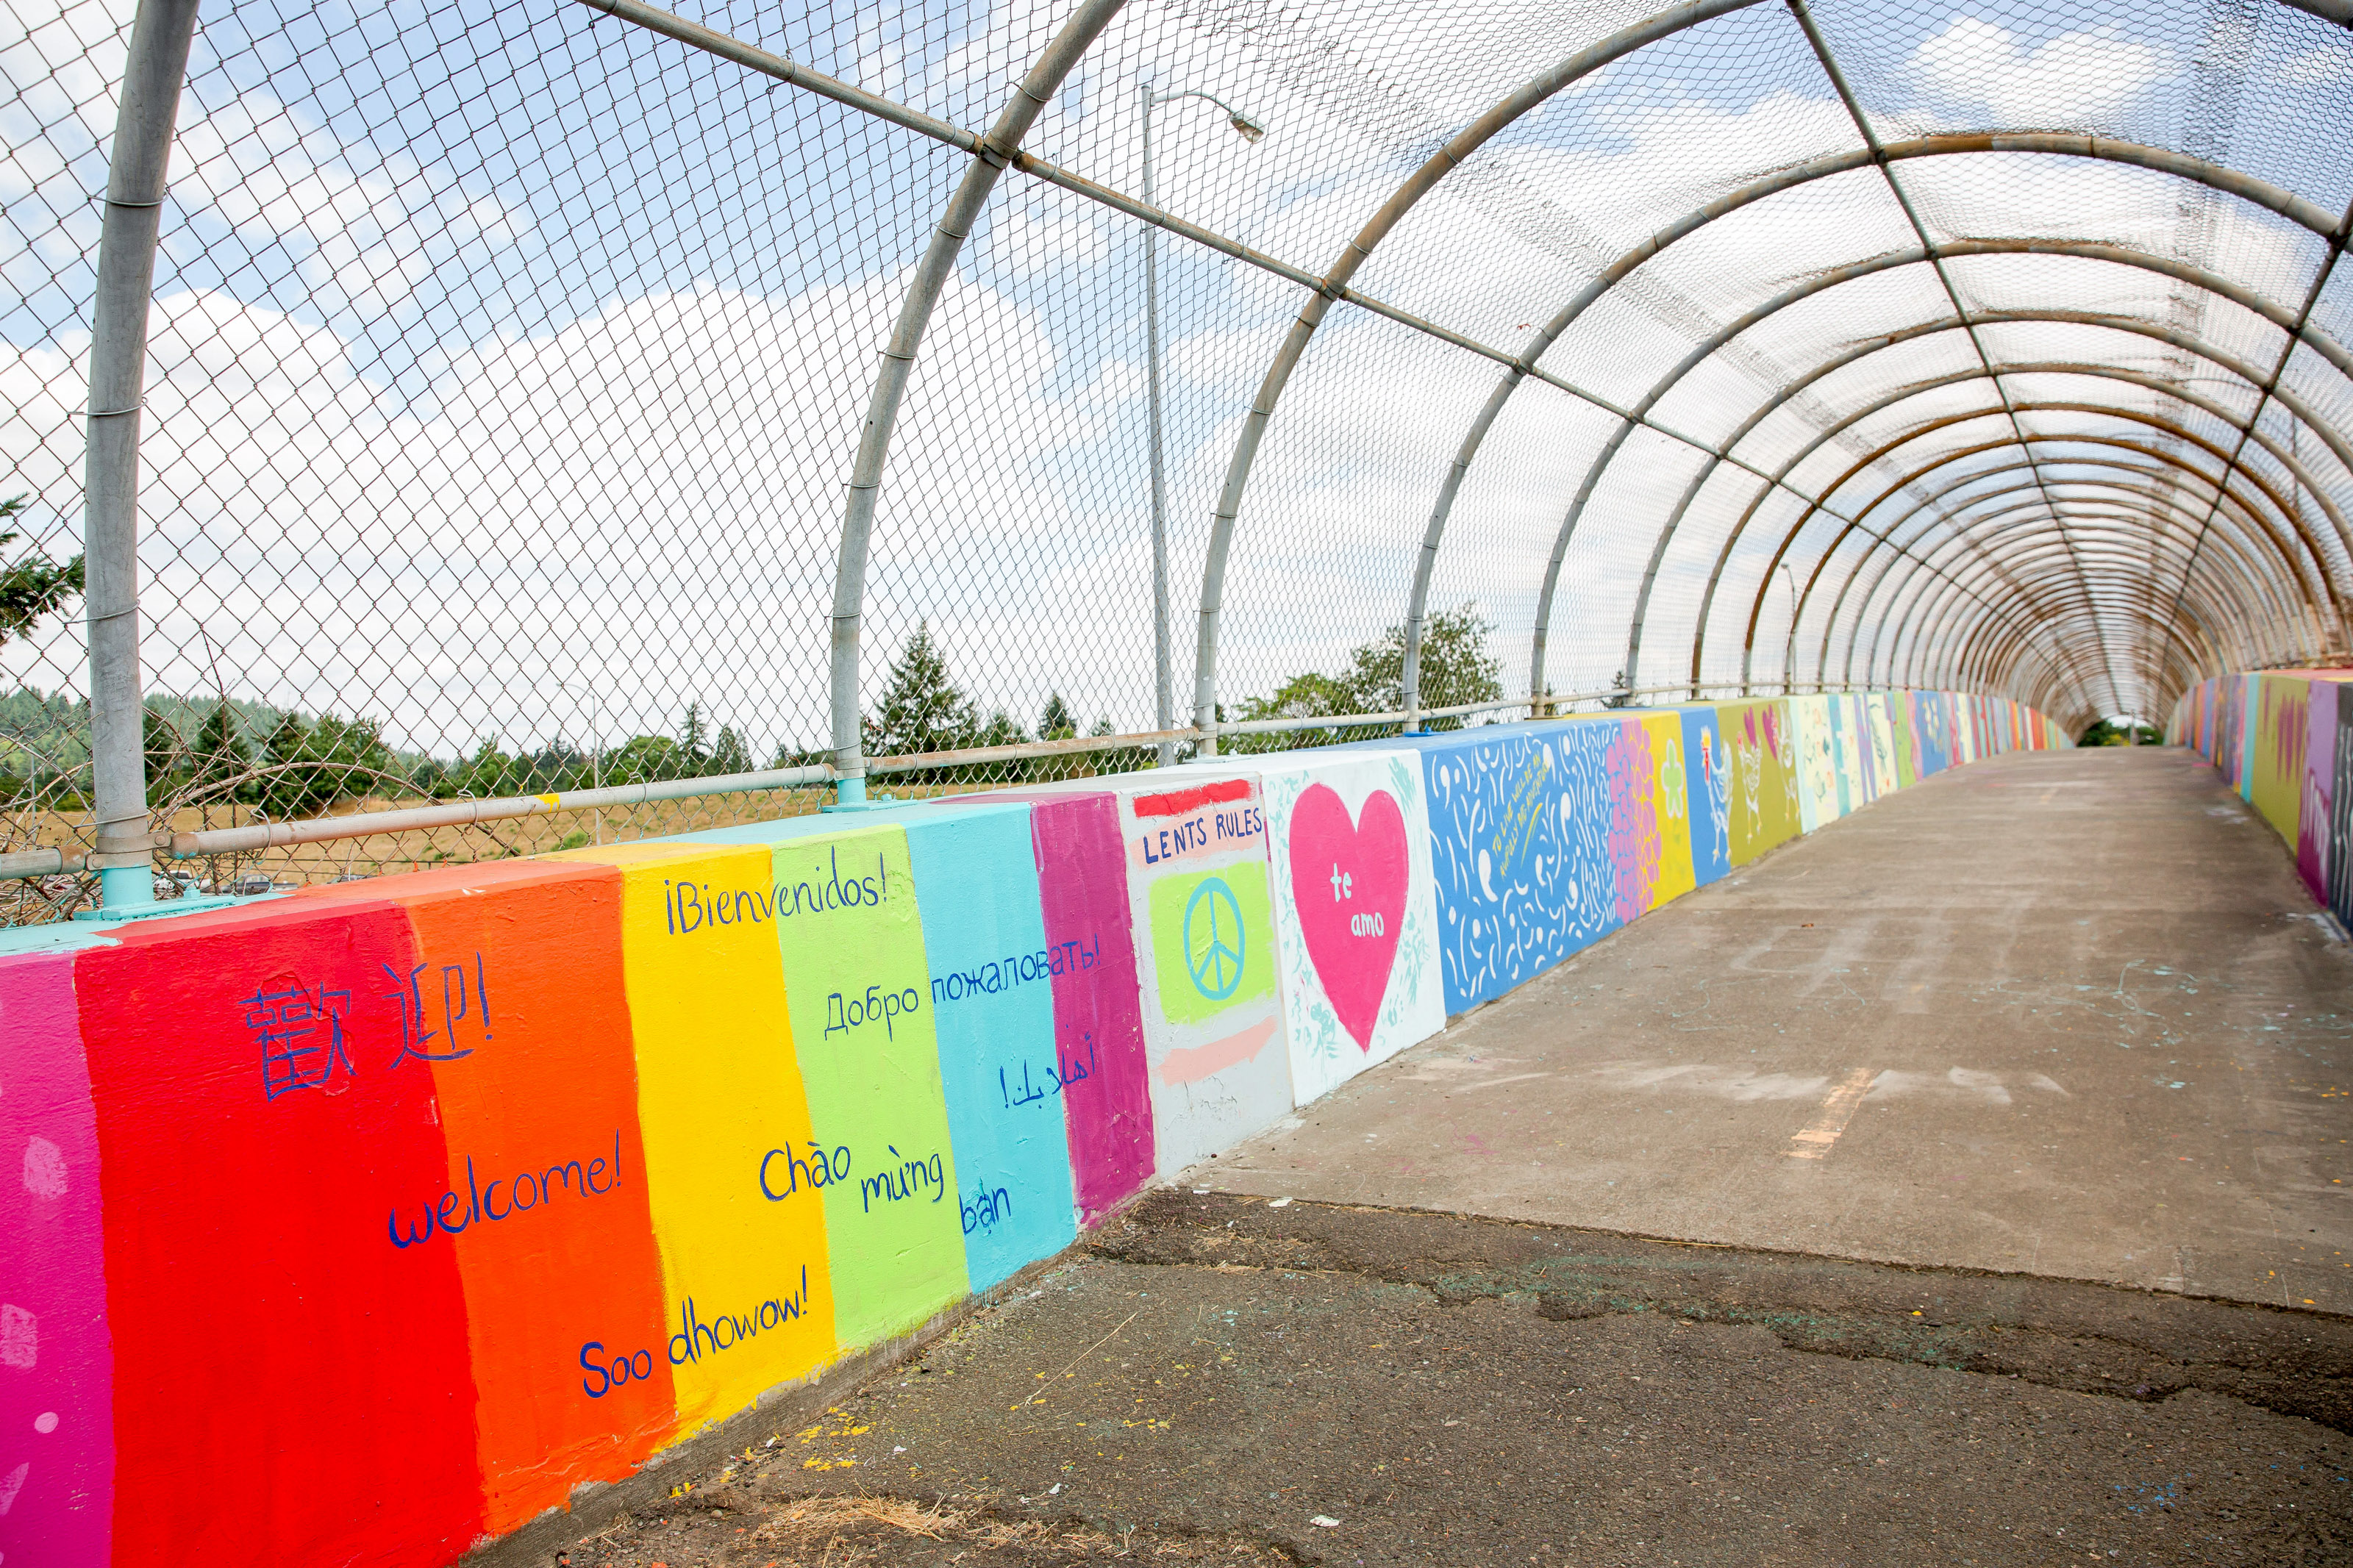 footbridge that bisects Lents neighborhood is painted in multiple colors